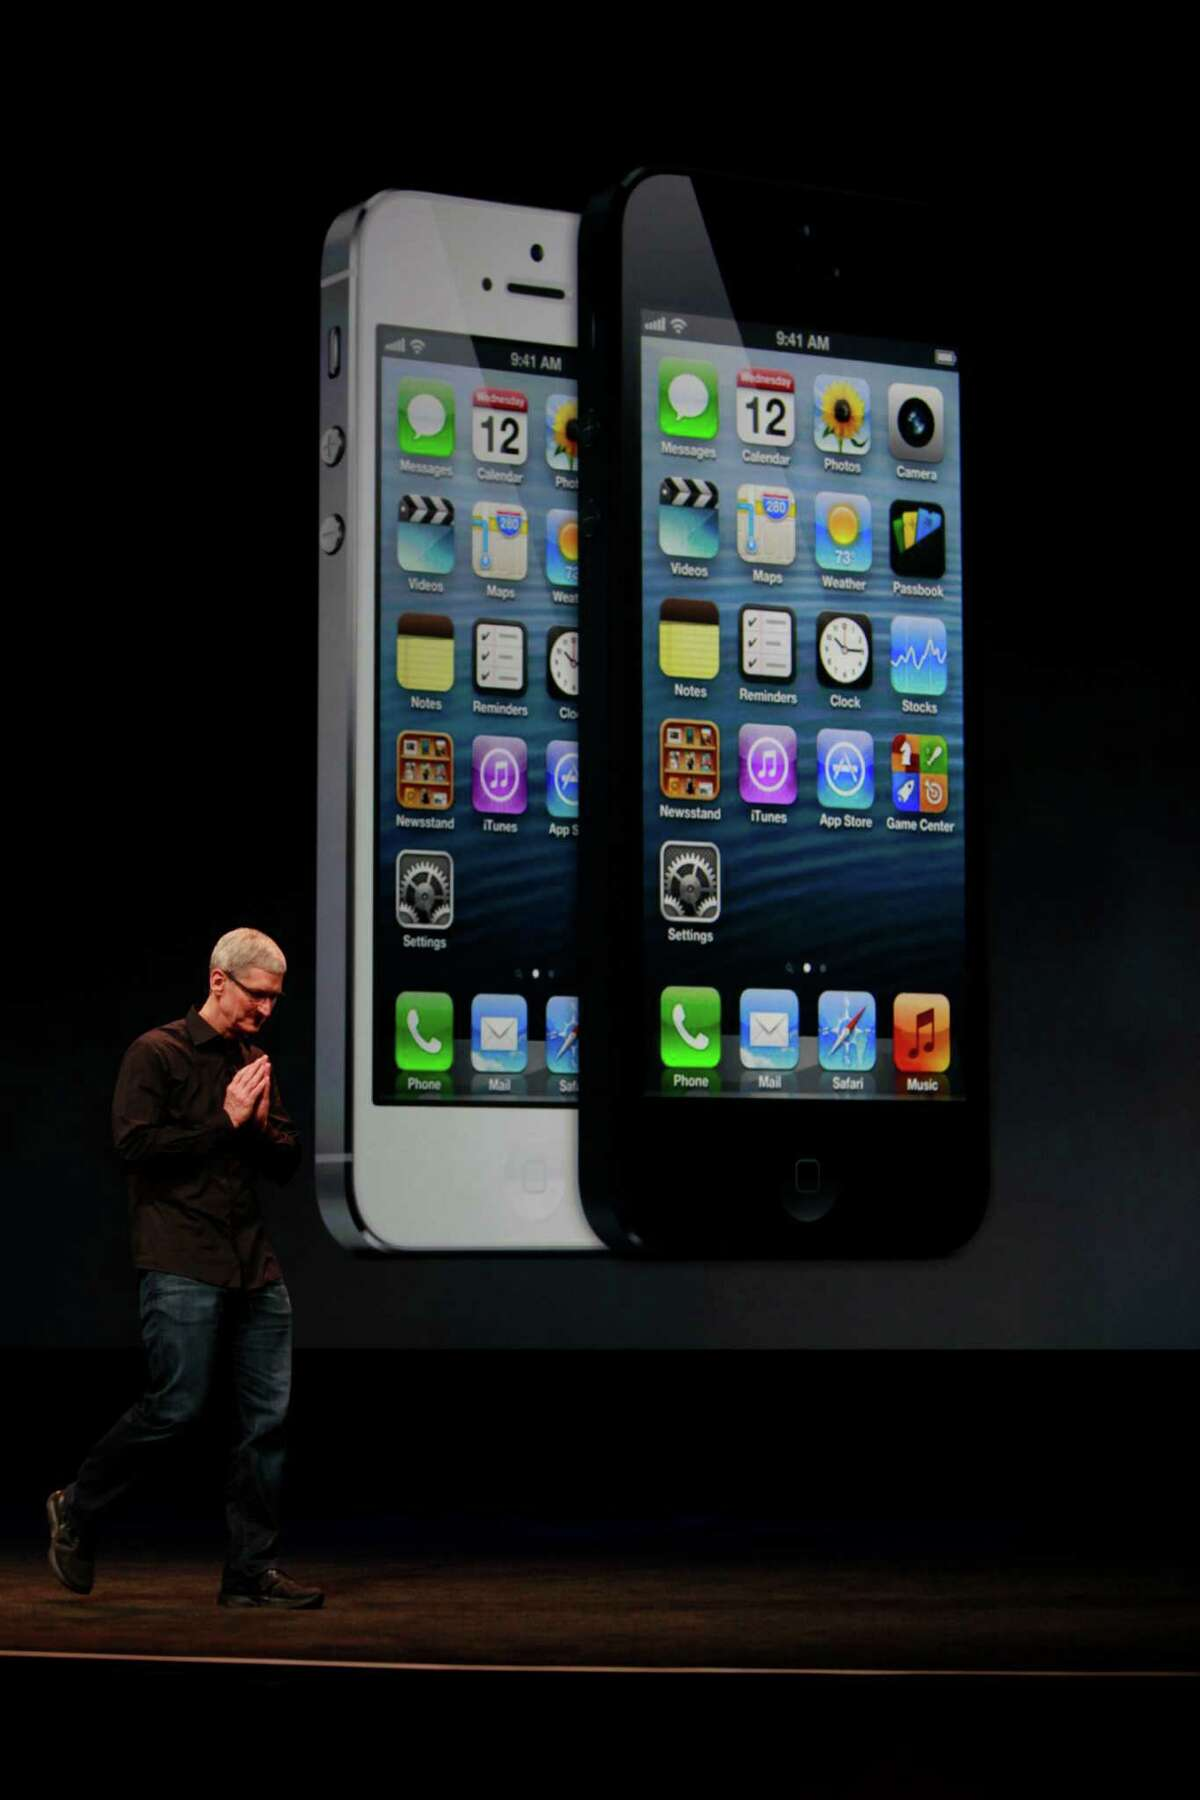 Apple CEO Tim Cook introduces the iPhone 5 on Wednesday in San Francisco. The new version features a larger screen and a faster network with a thinner, lighter design.